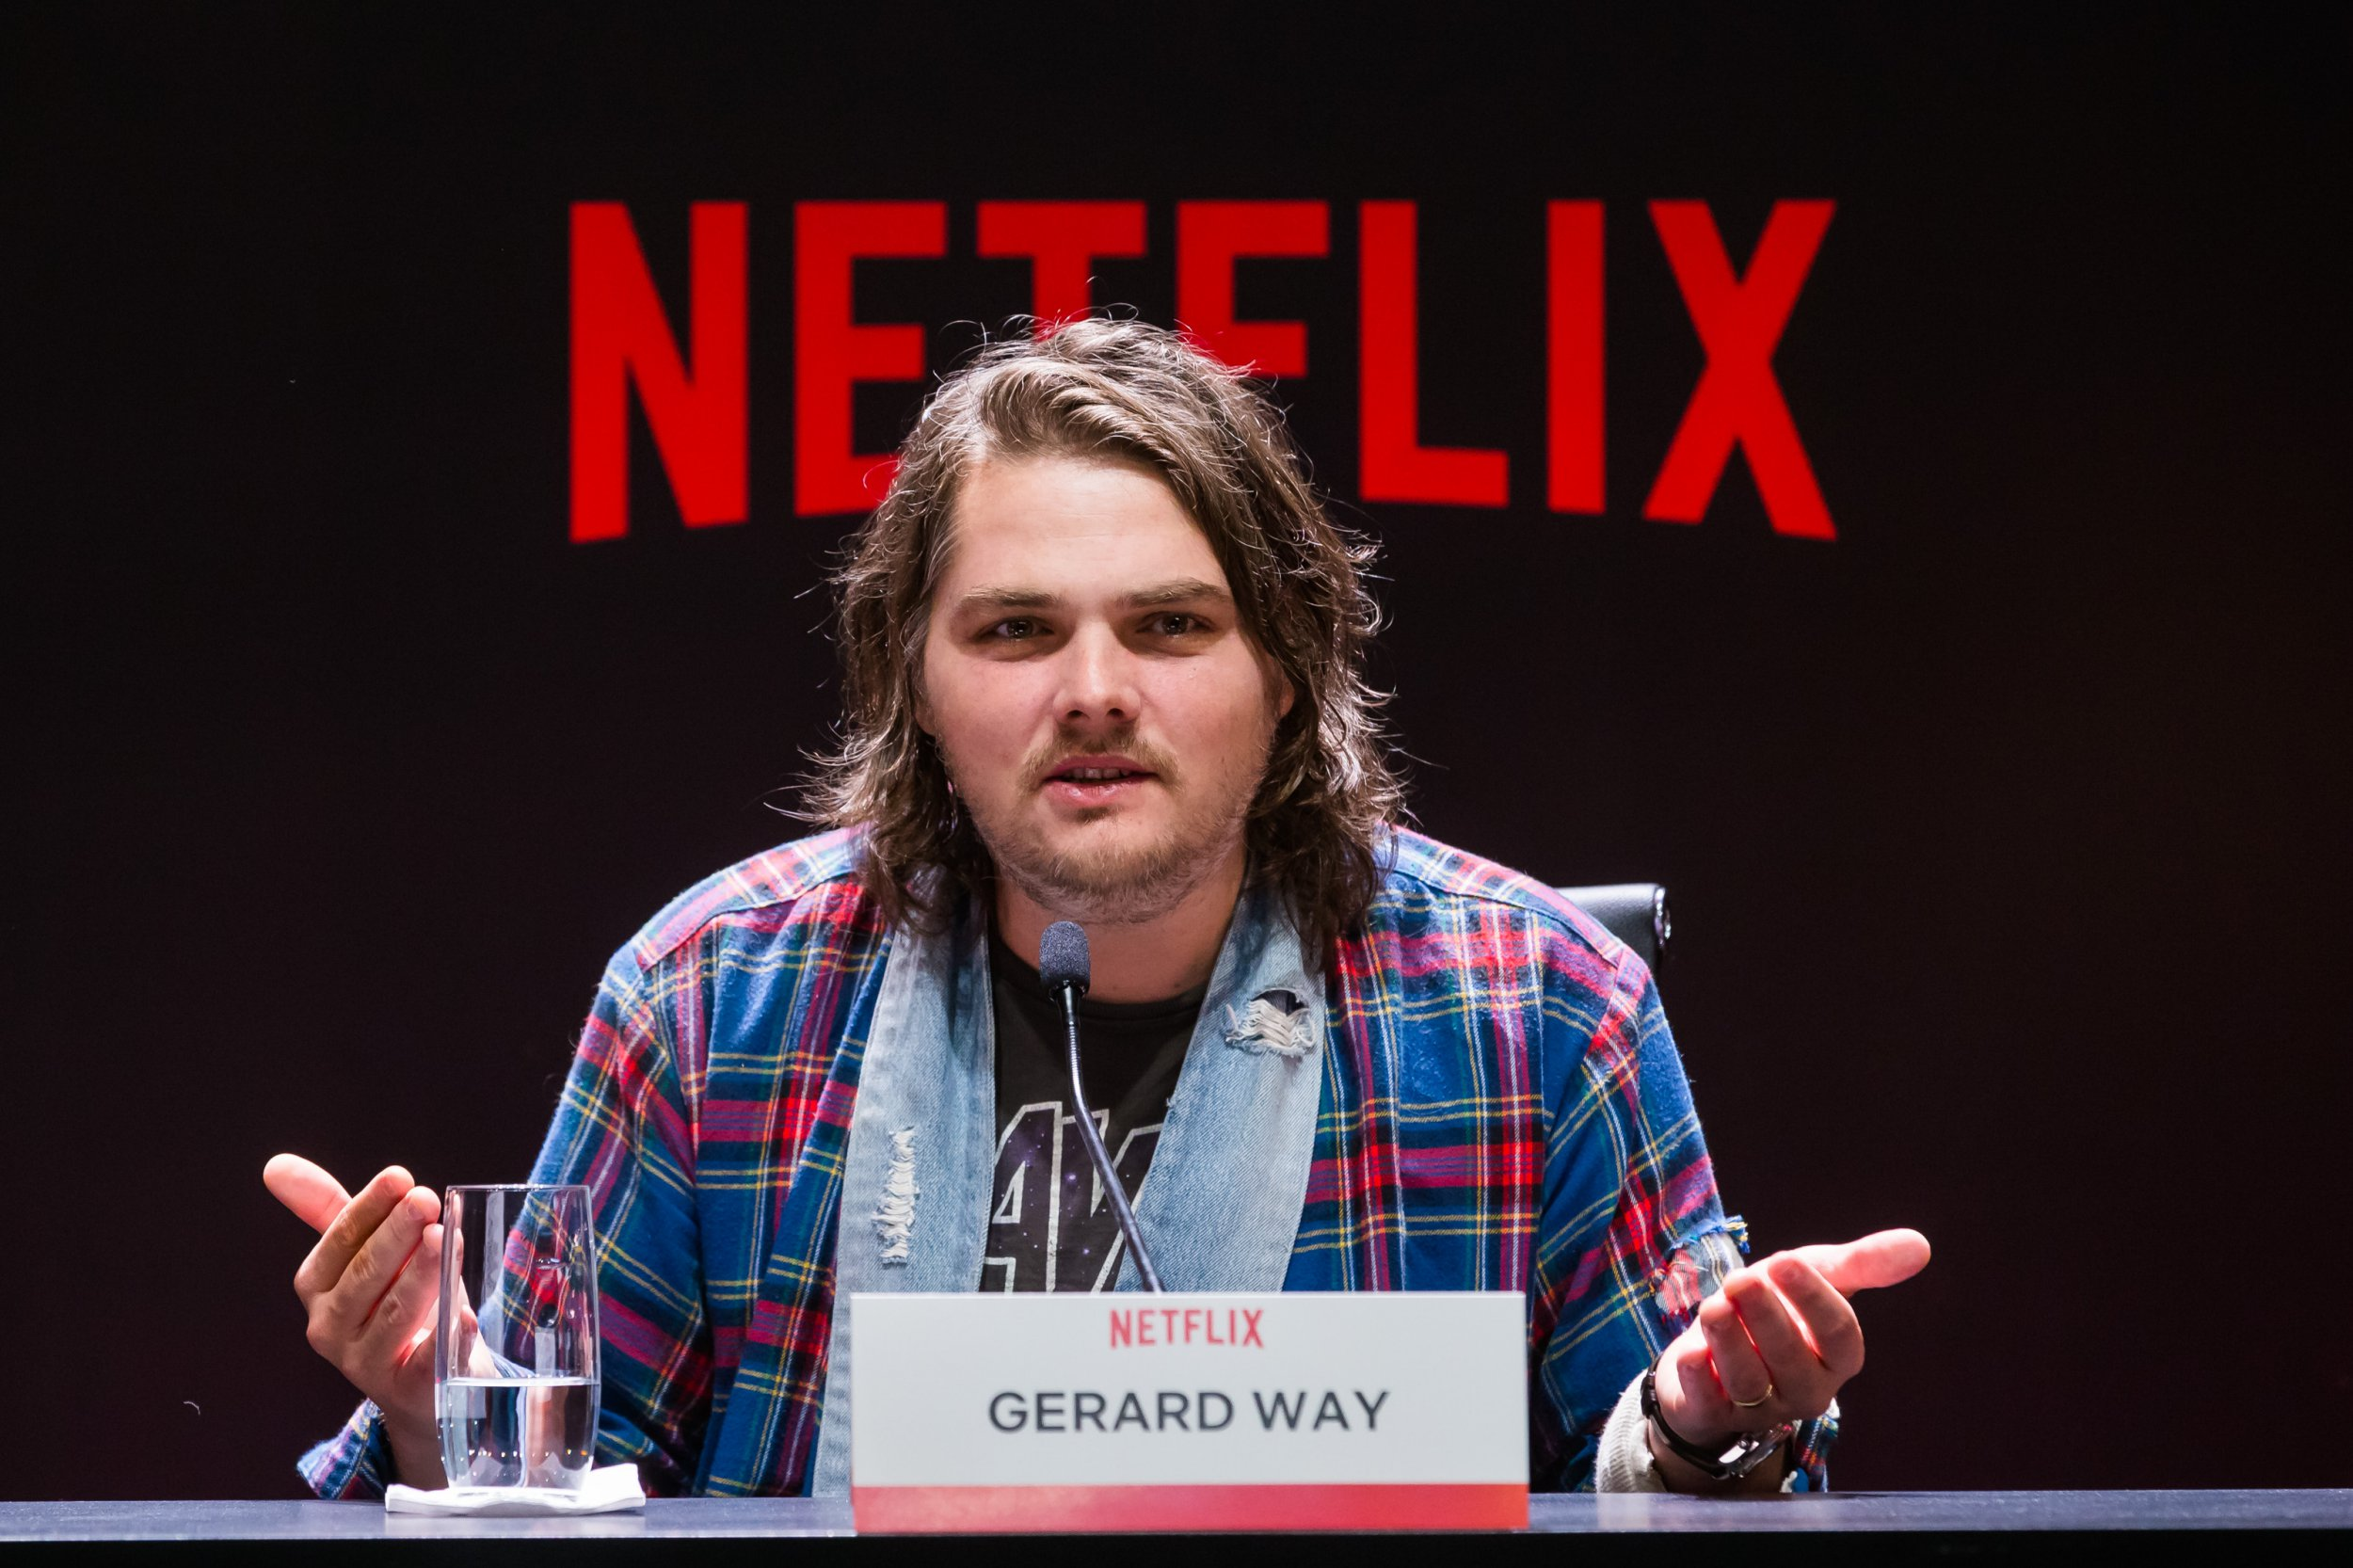 Gerard Way promotes The Umbrella Academy